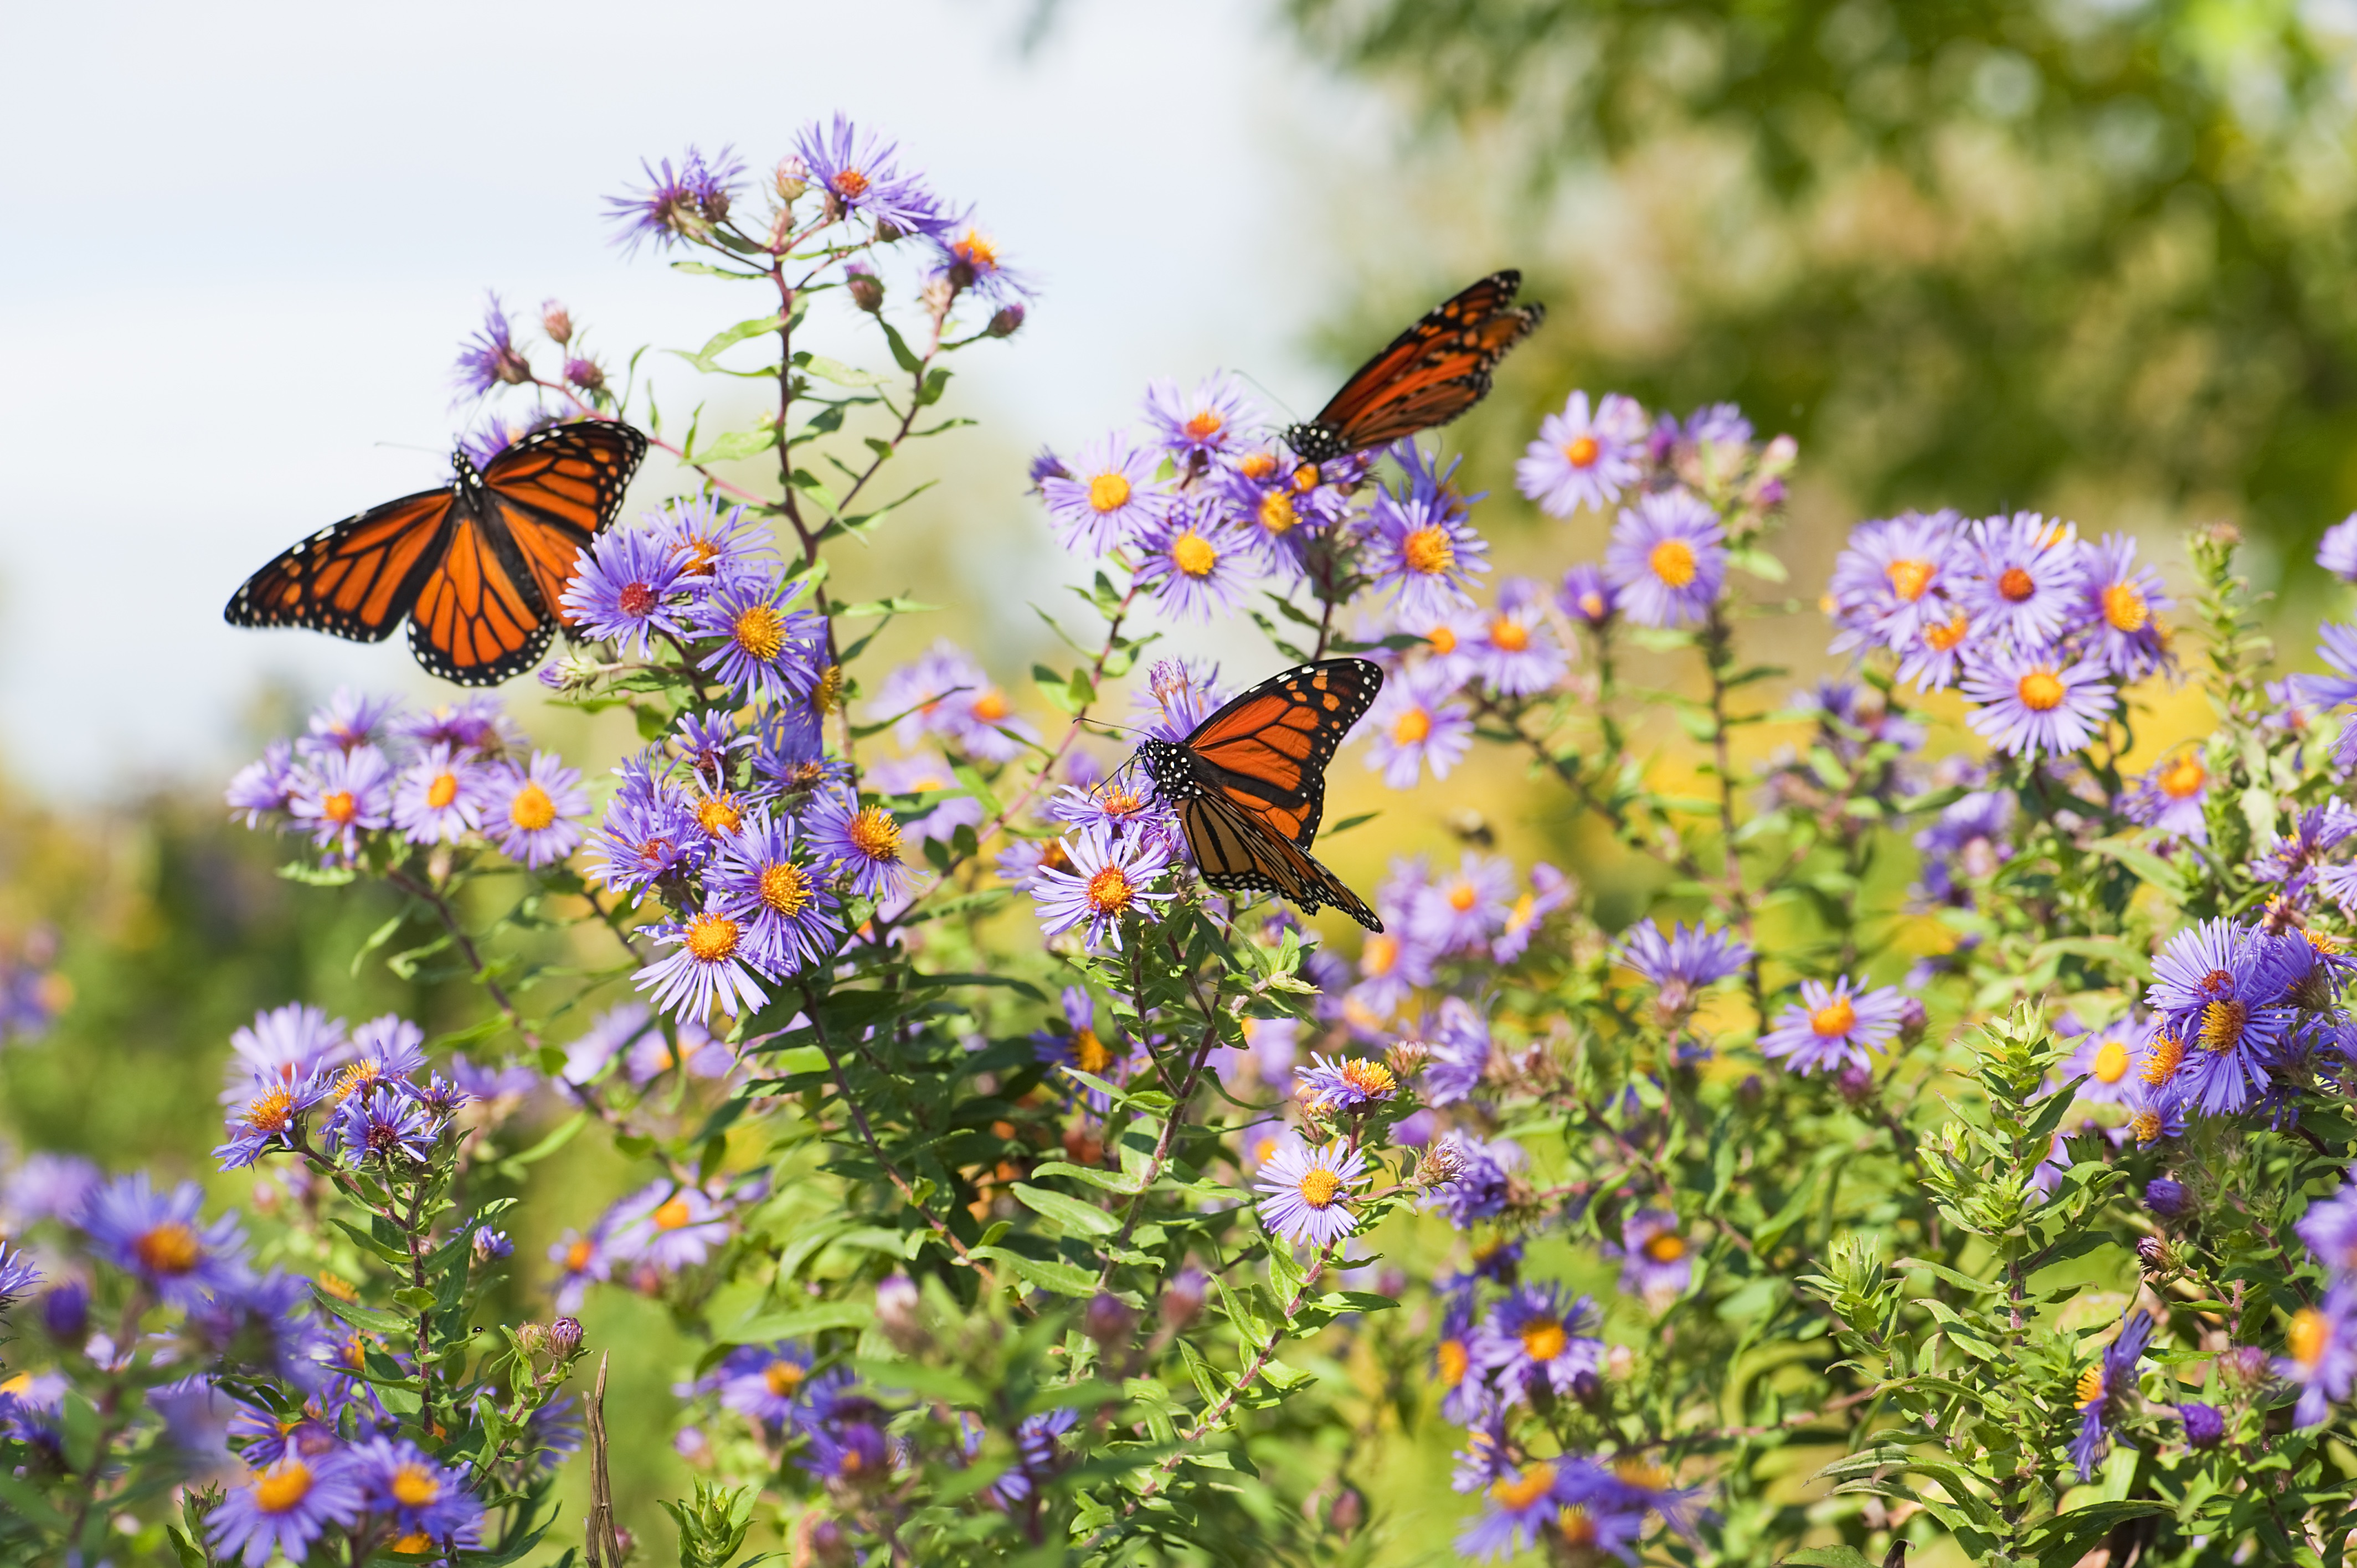 There's an Extra-Large Migration of Monarch Butterflies Fluttering Through Texas